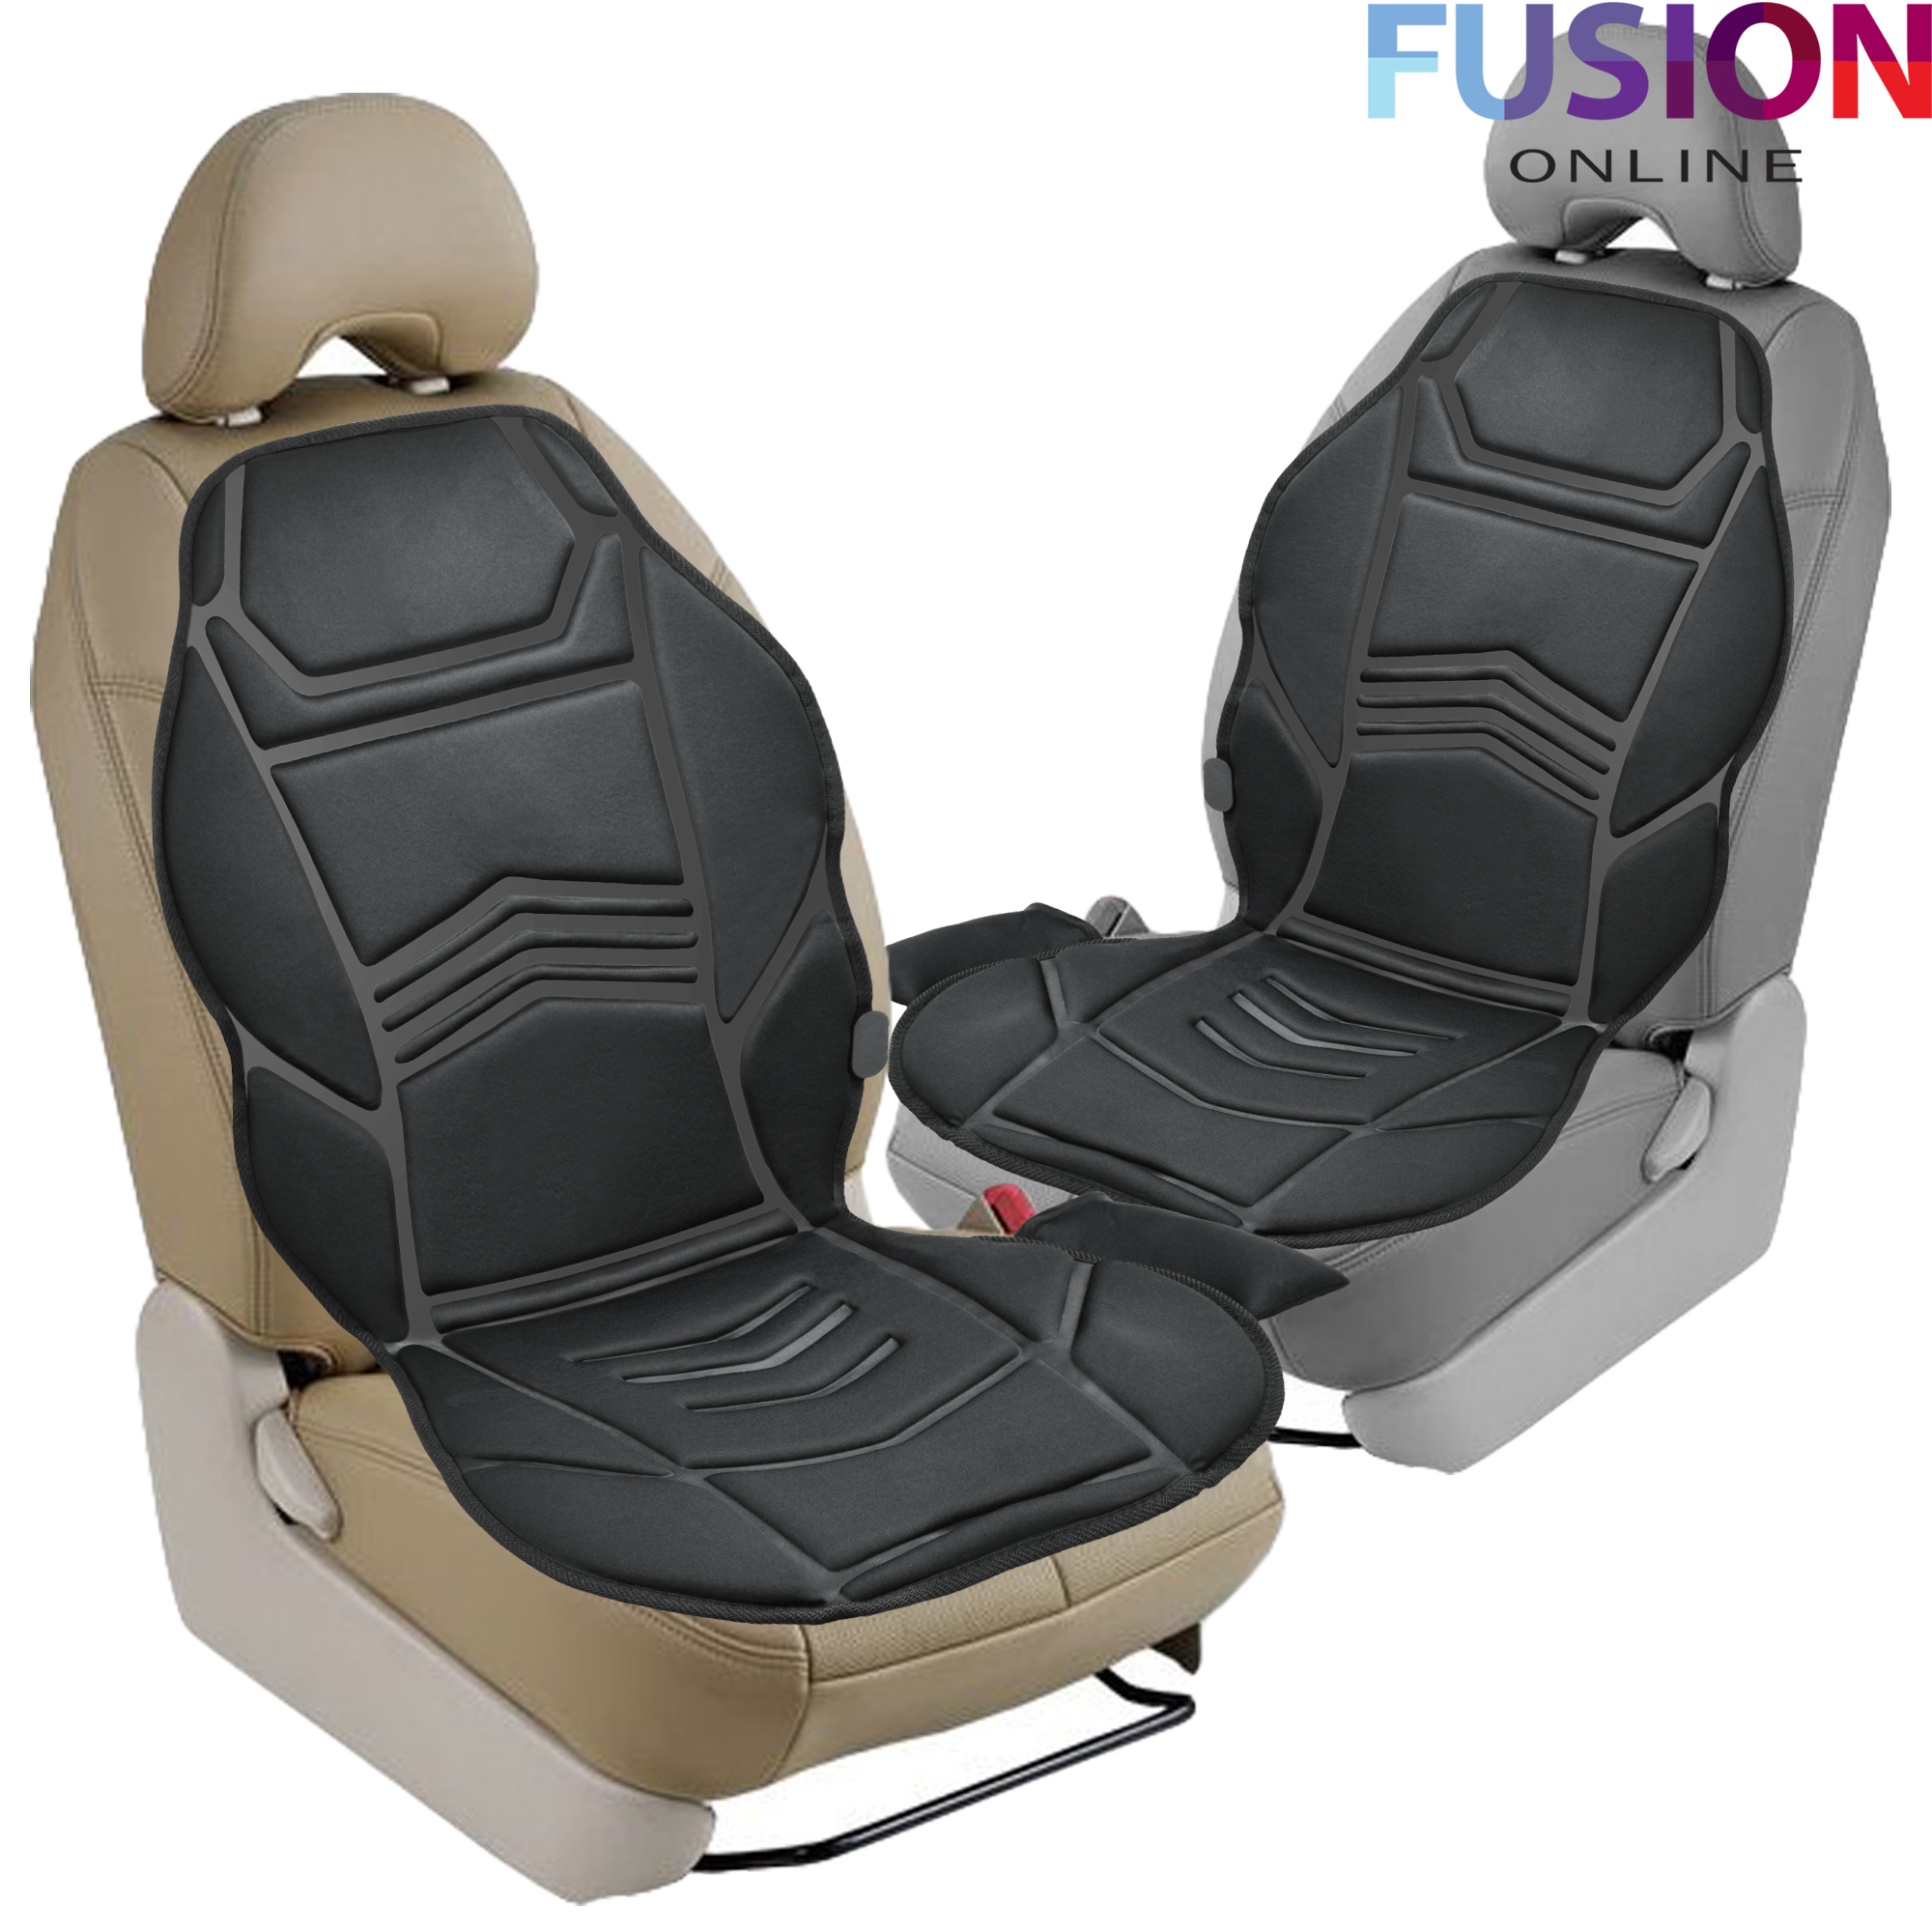 heated back seat remote control massage chair car home van relax cushion ebay. Black Bedroom Furniture Sets. Home Design Ideas